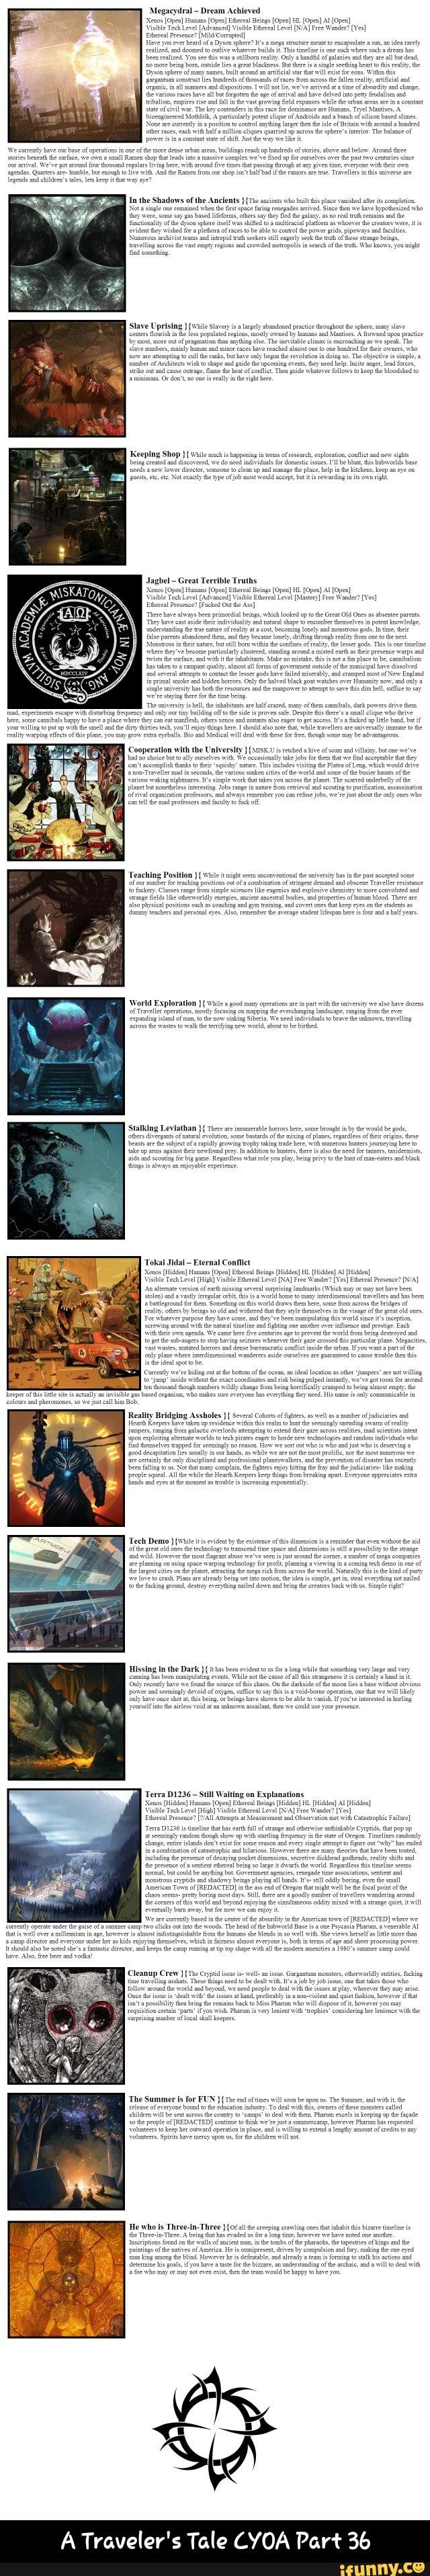 A Traveler's Tale CYOA Part 36 - iFunny :) | Funny Reddit